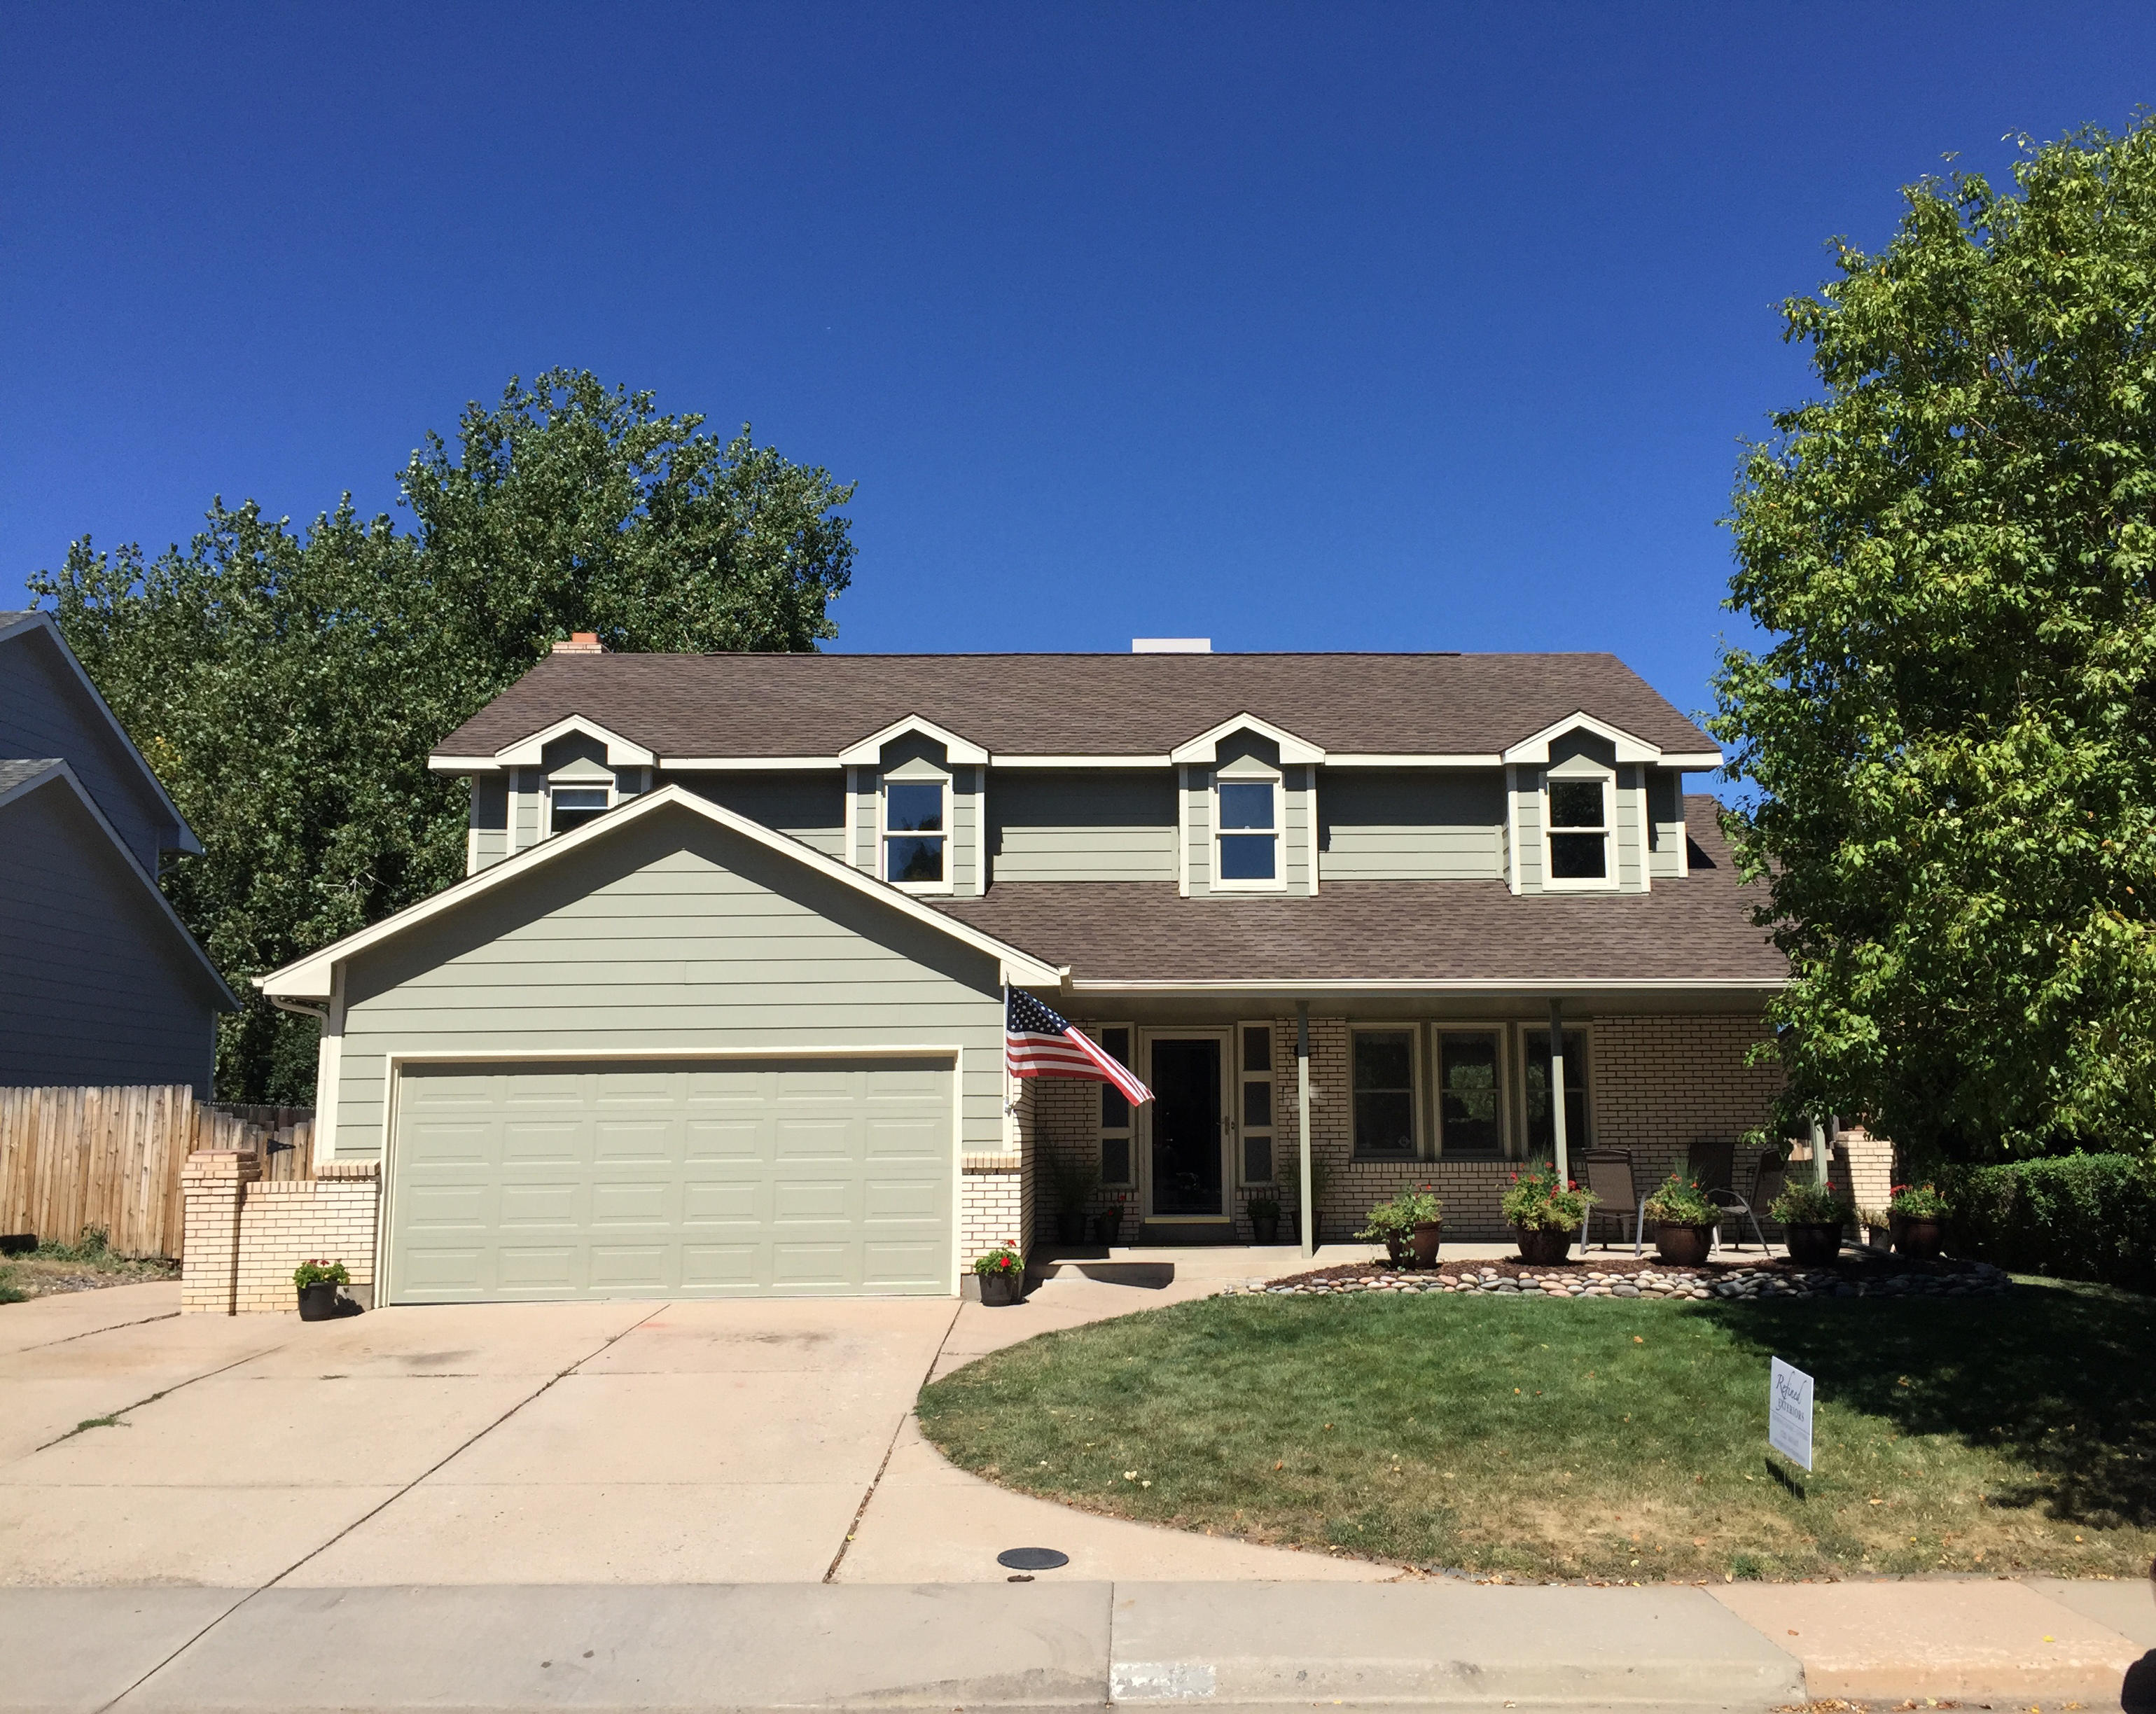 refined exteriors in denver co 80212